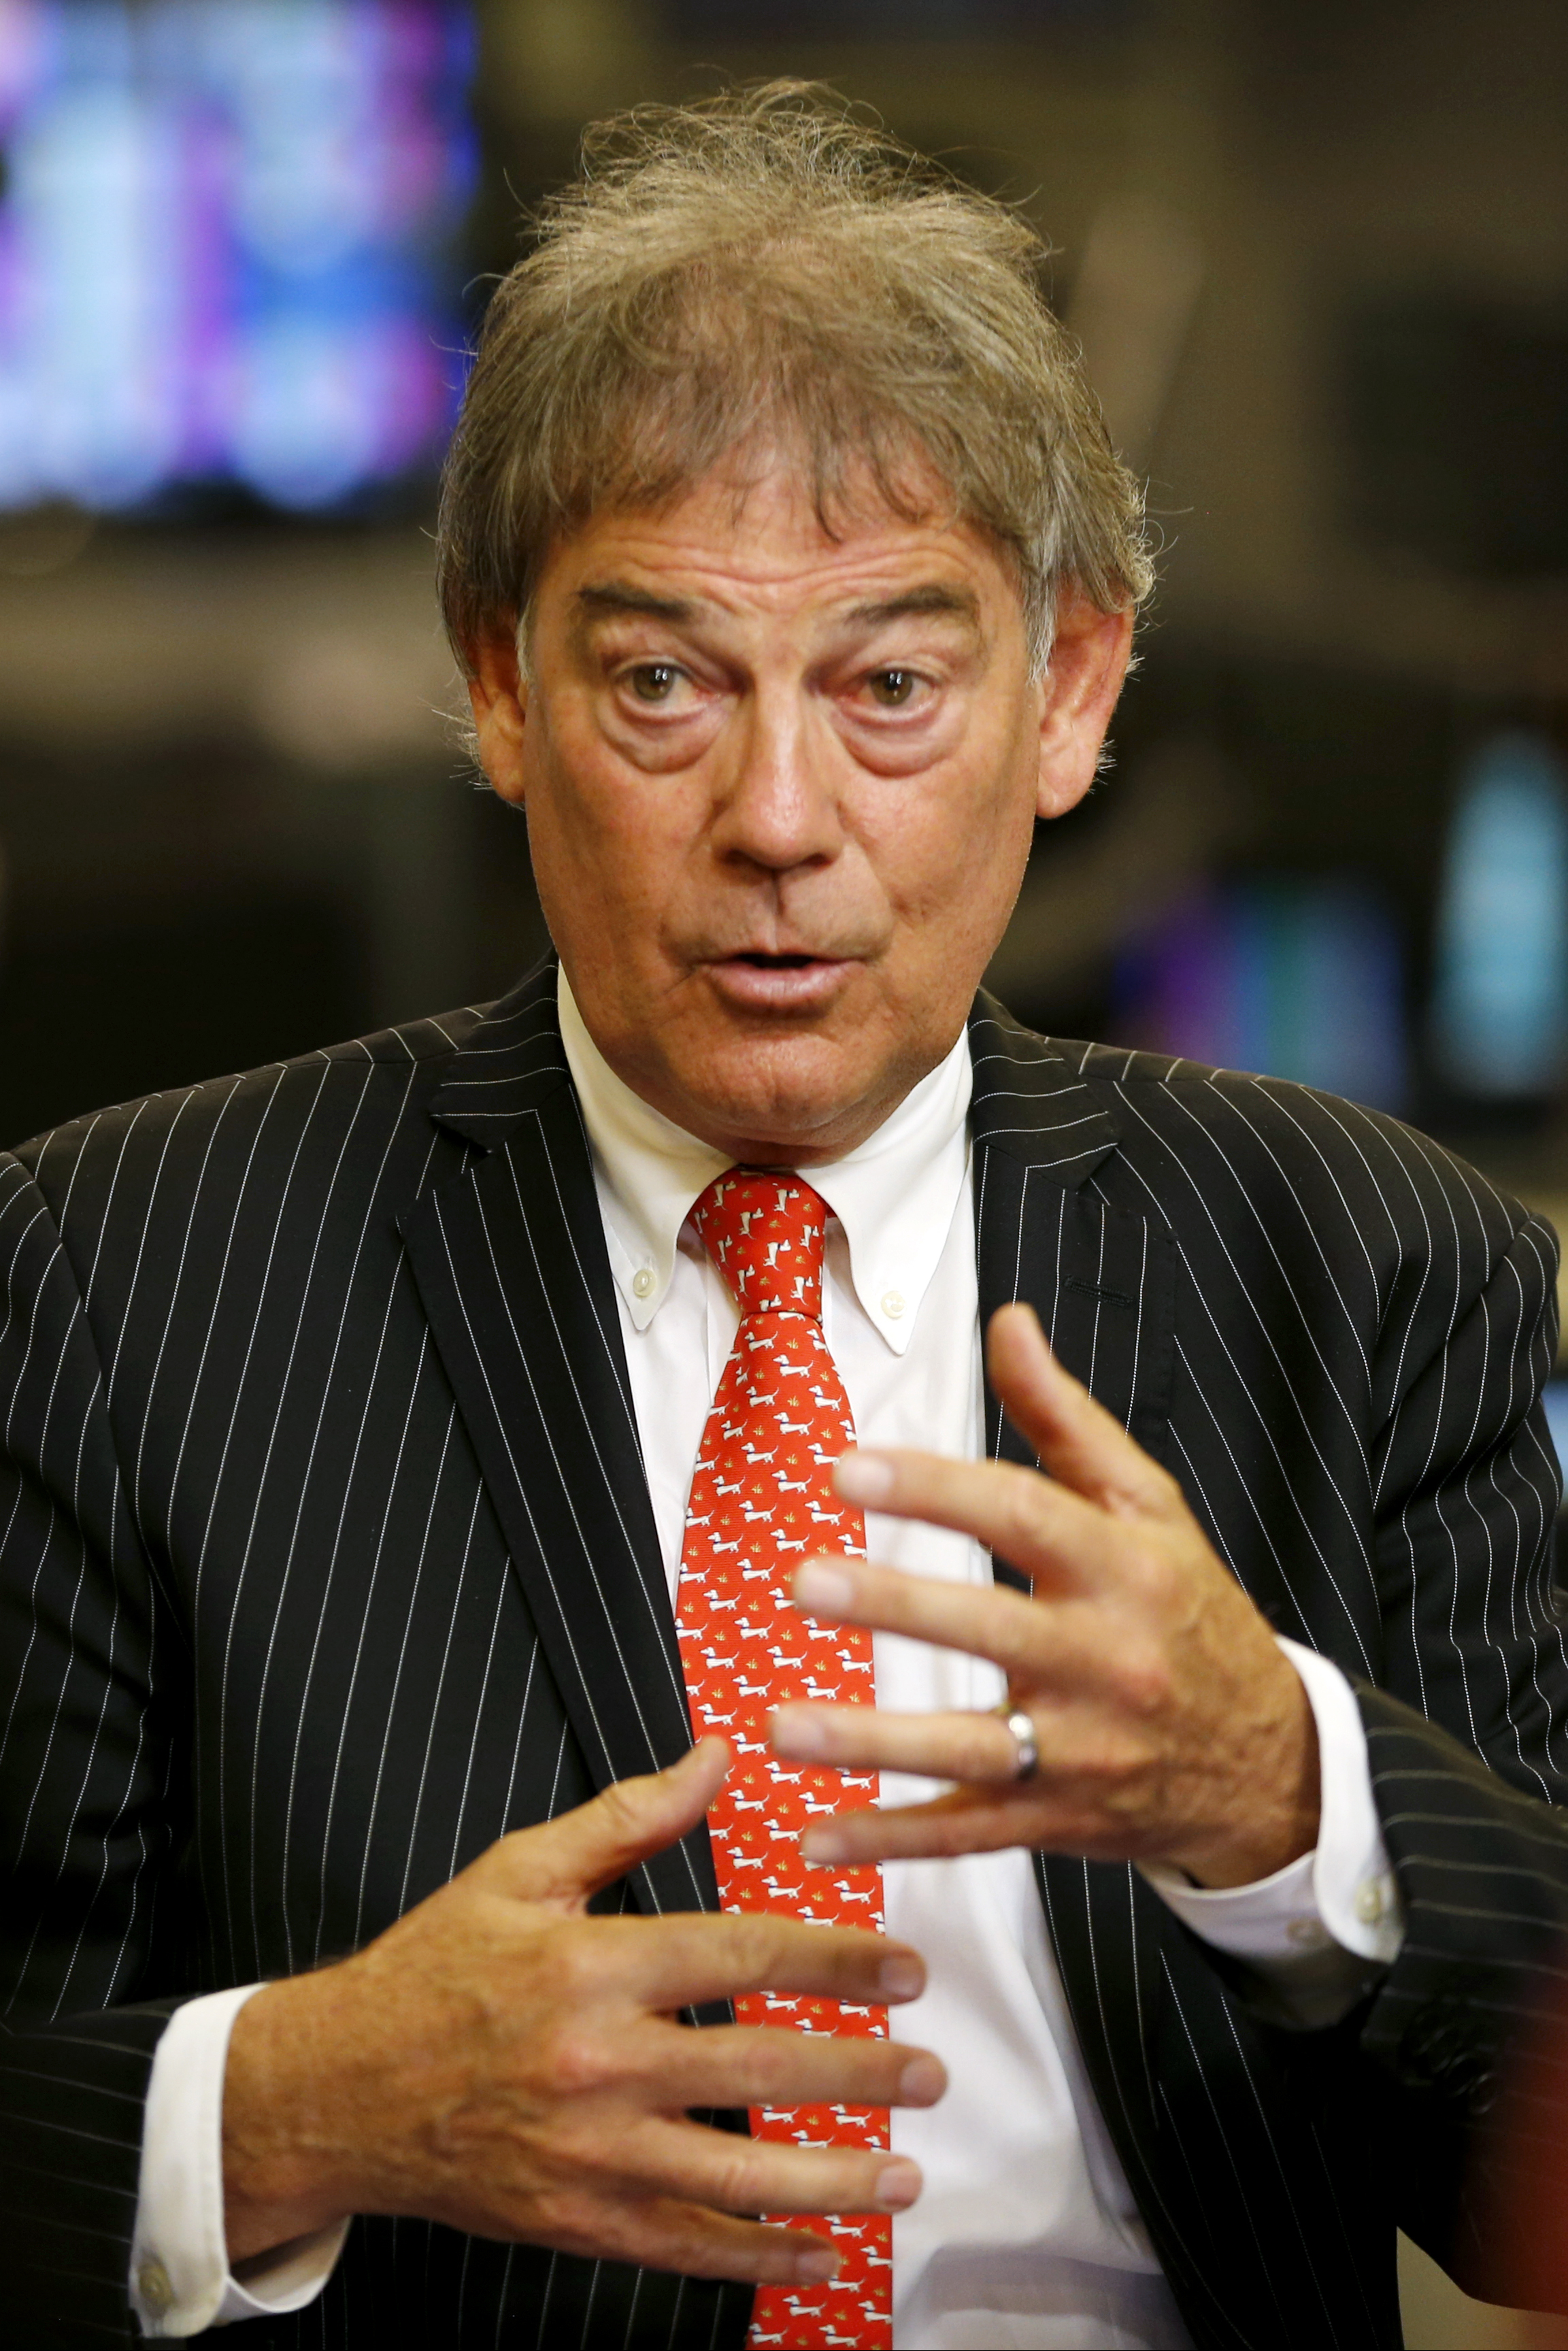 David Howman, director general of the World Anti-Doping Agency, speaks to The Associated Press during an interview, Tuesday, April 21, 2015, in New York. (AP Photo/Julio Cortez)